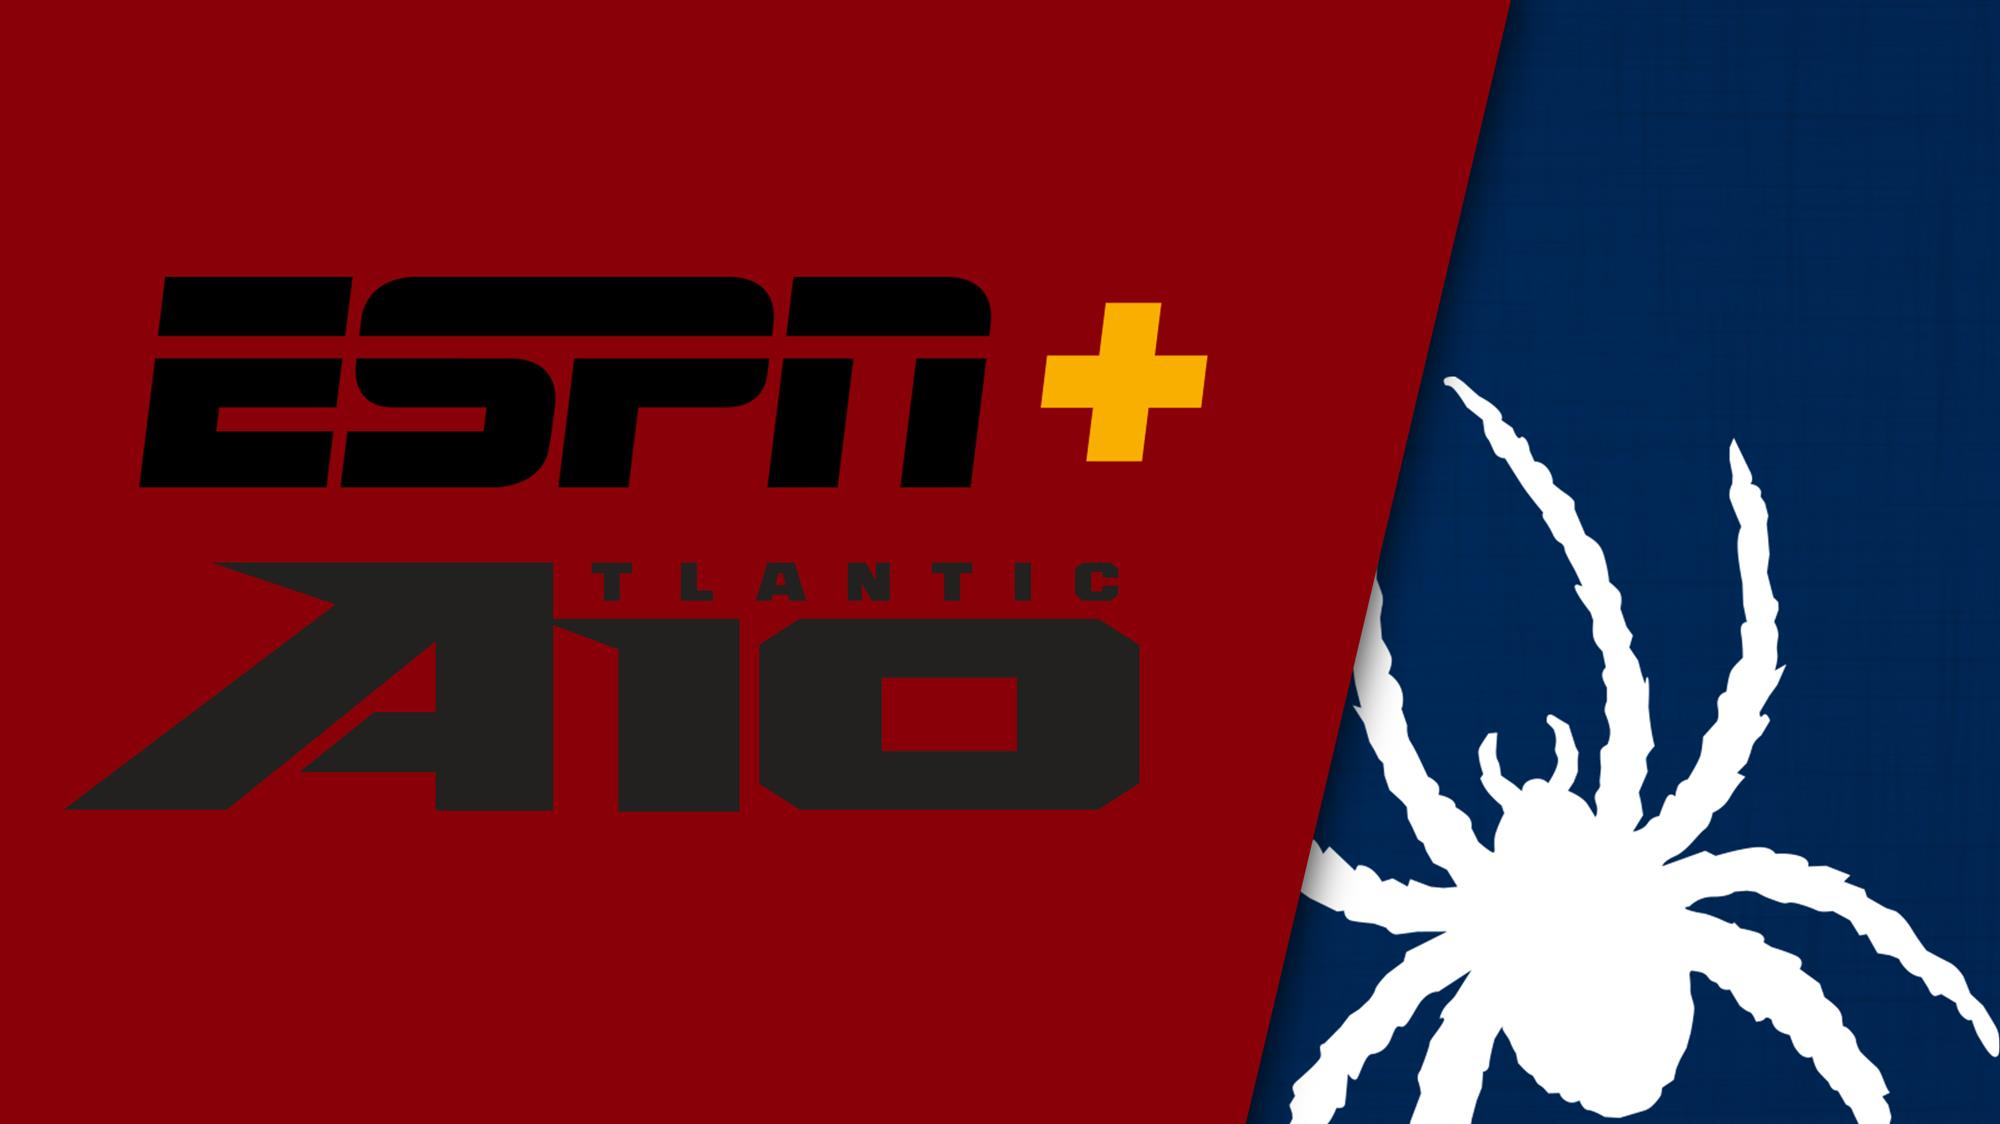 How-To Guide To ESPN+ & Spider Athletics - University of